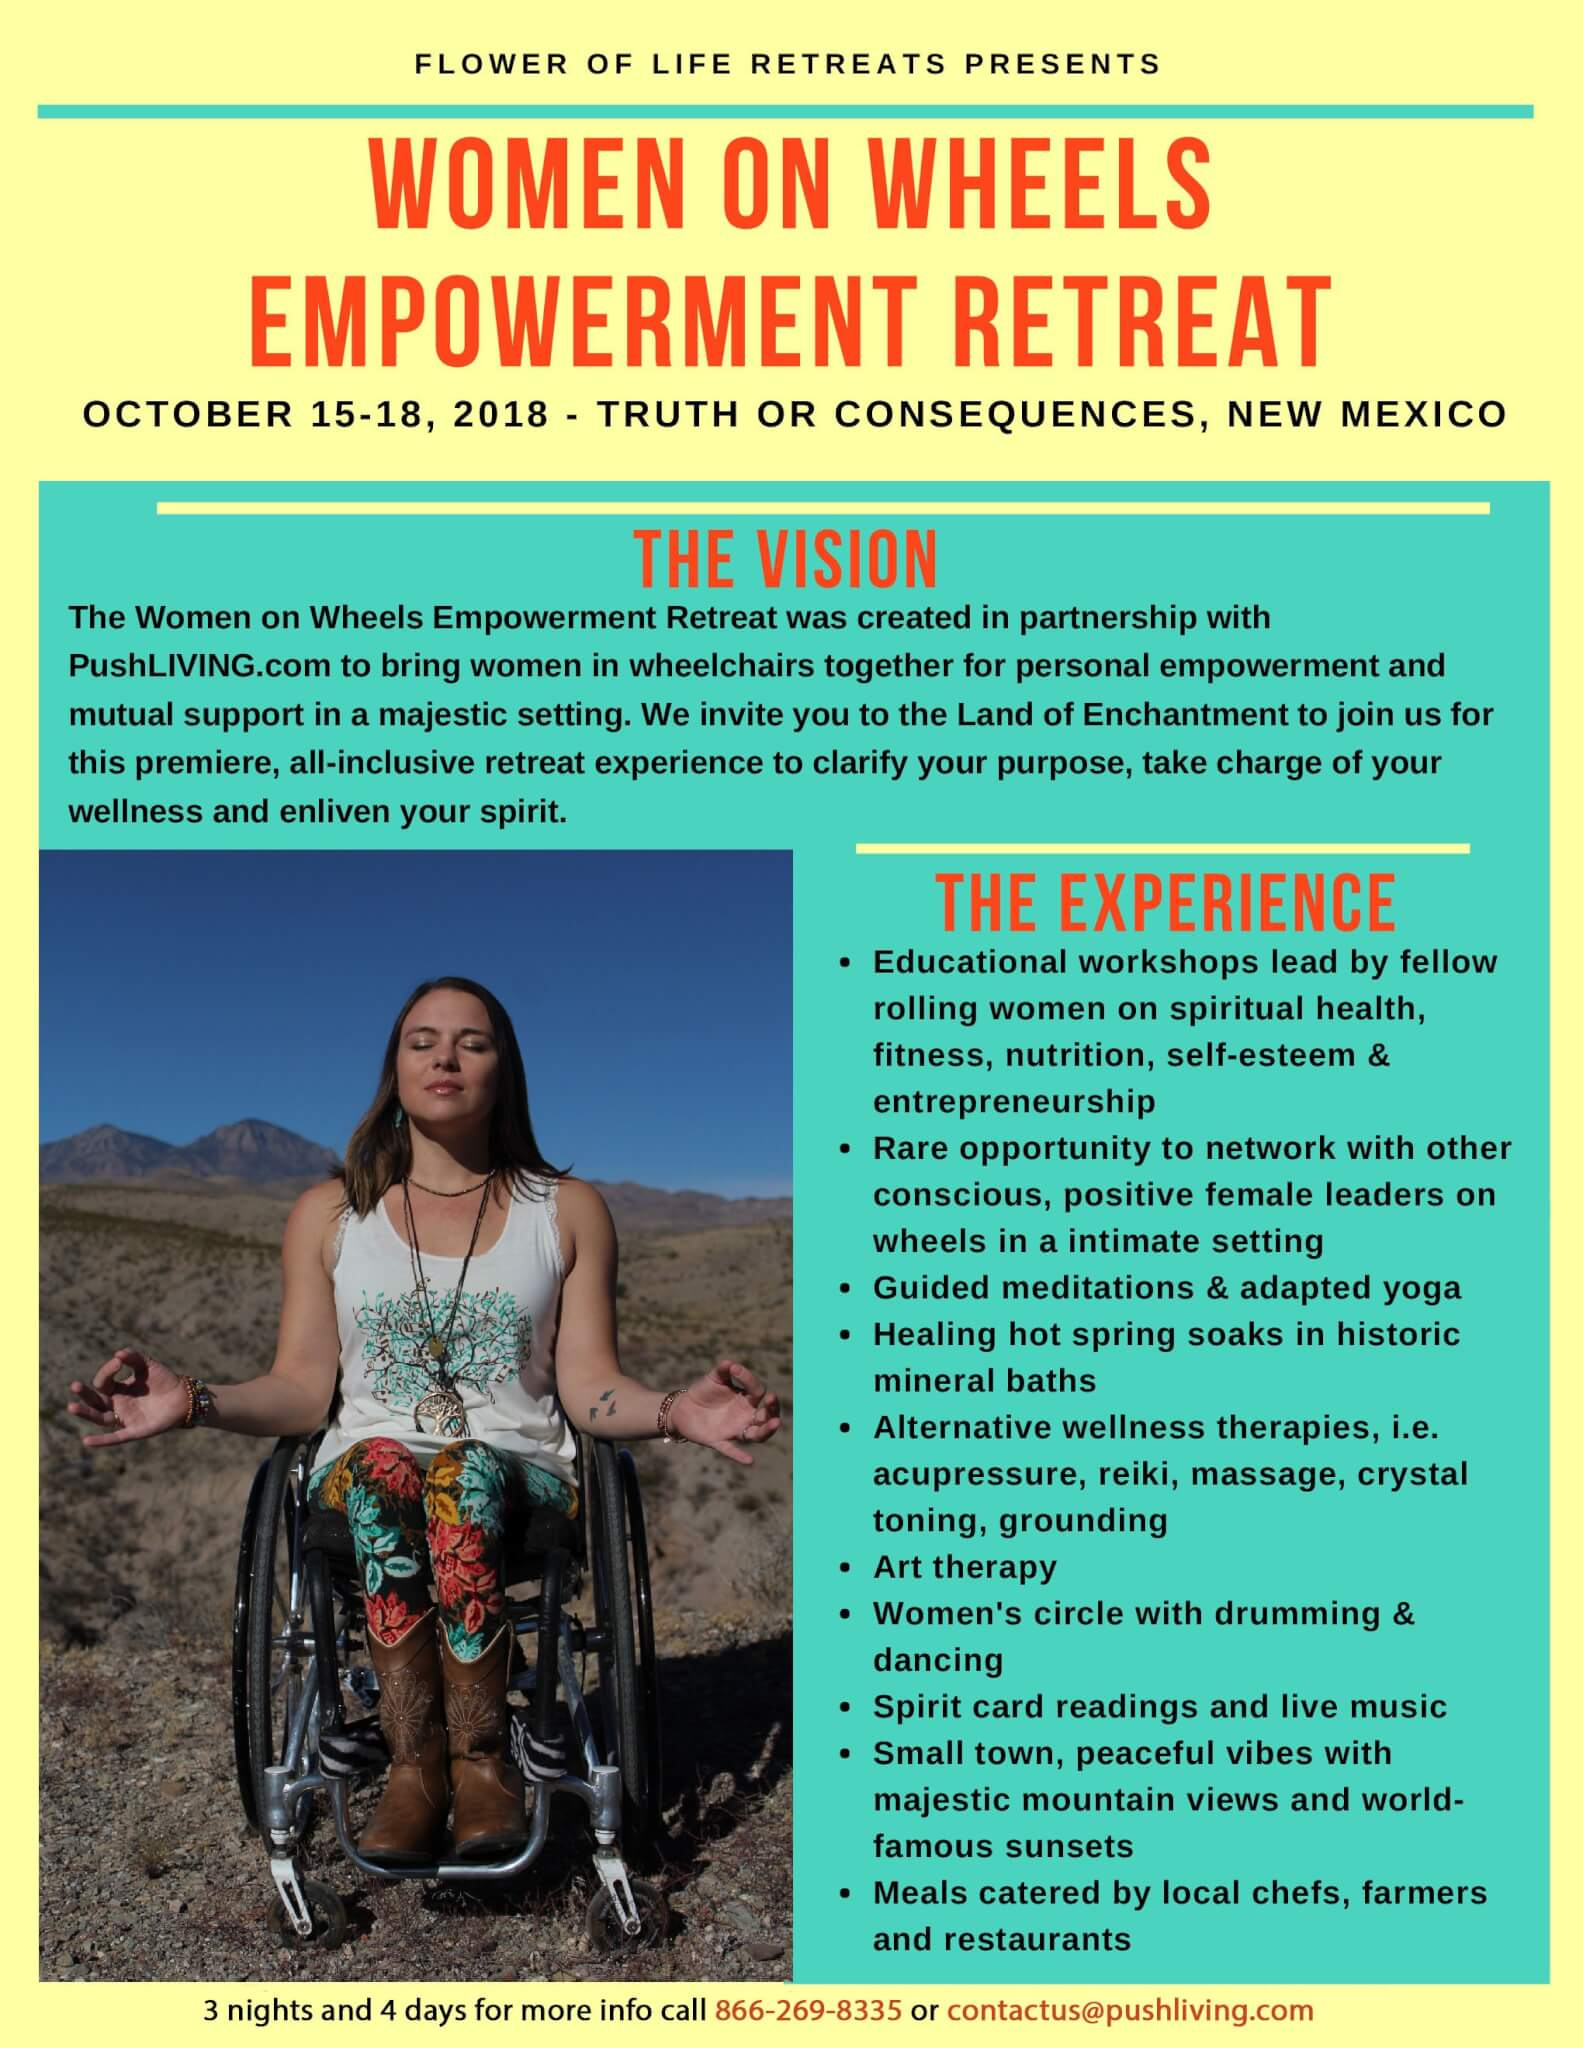 Women on wheels empowerment retreat - Women On Wheels Empowerment Retreat - Truth or Consequences, New Mexico